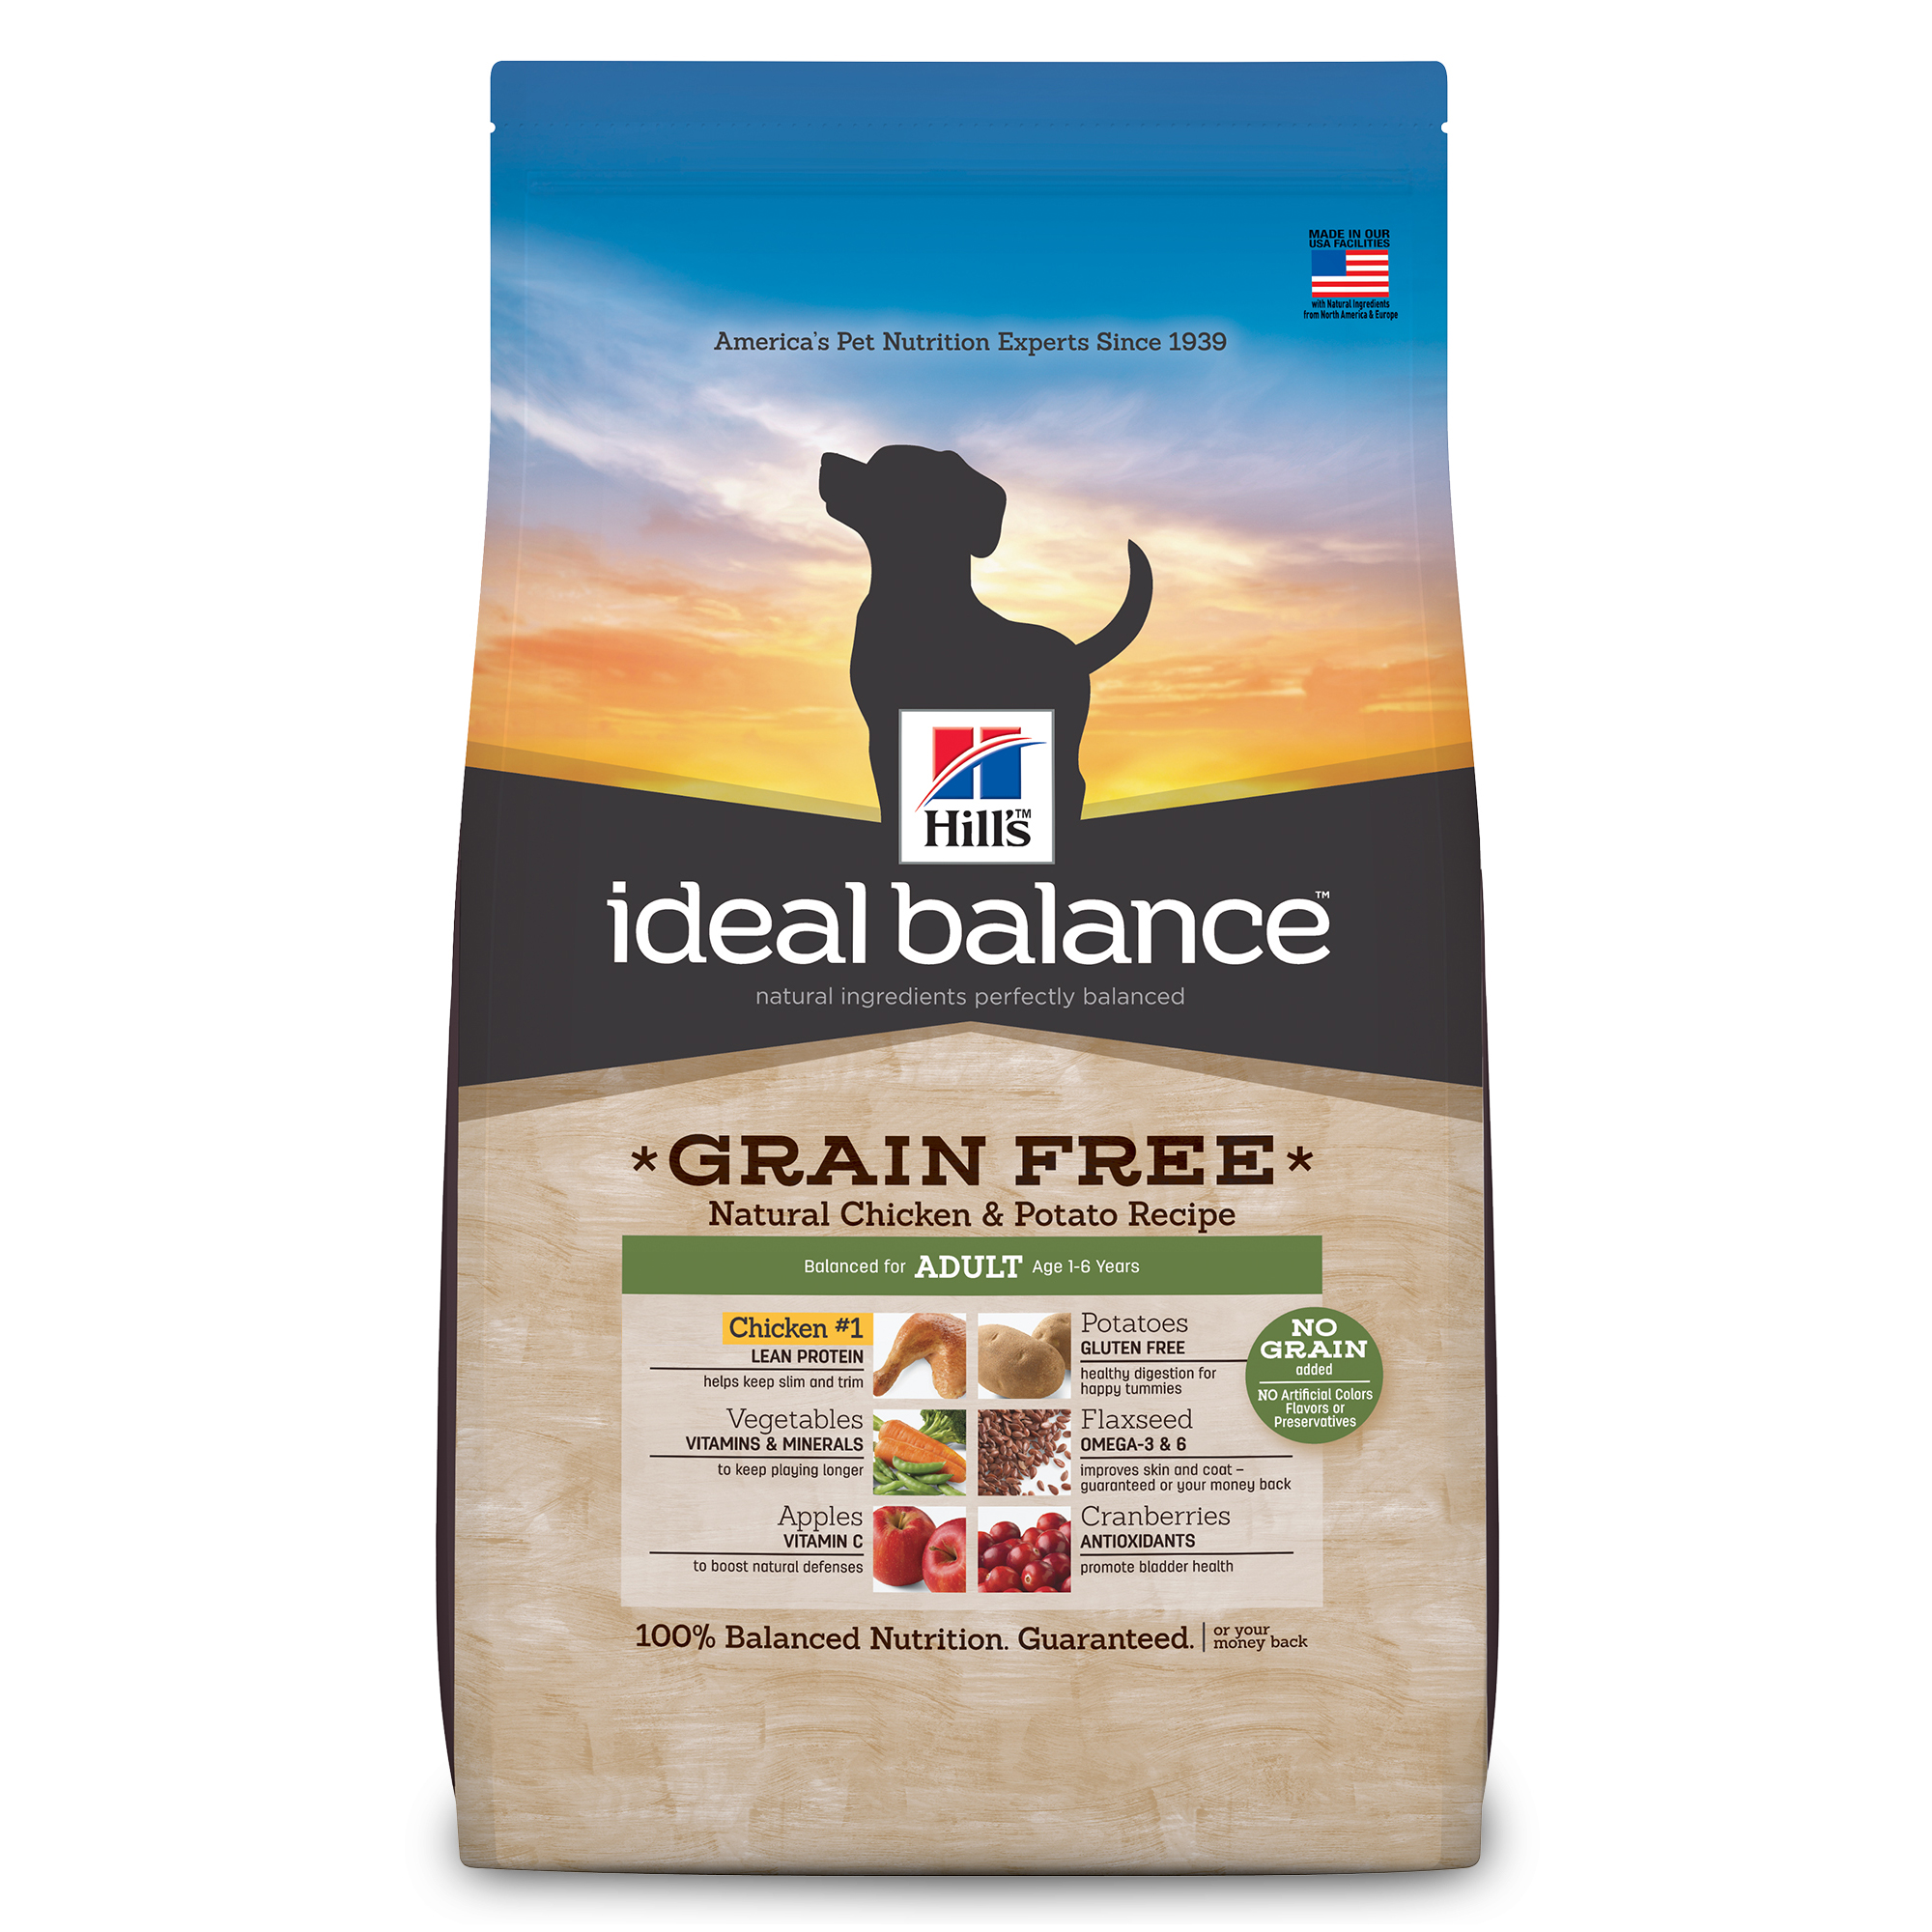 Hill's Ideal Balance (Get $5 back for every $20 spent) Adult Grain Free Natural Chicken & Potato Recipe Dry Dog Food, 21 lb bag